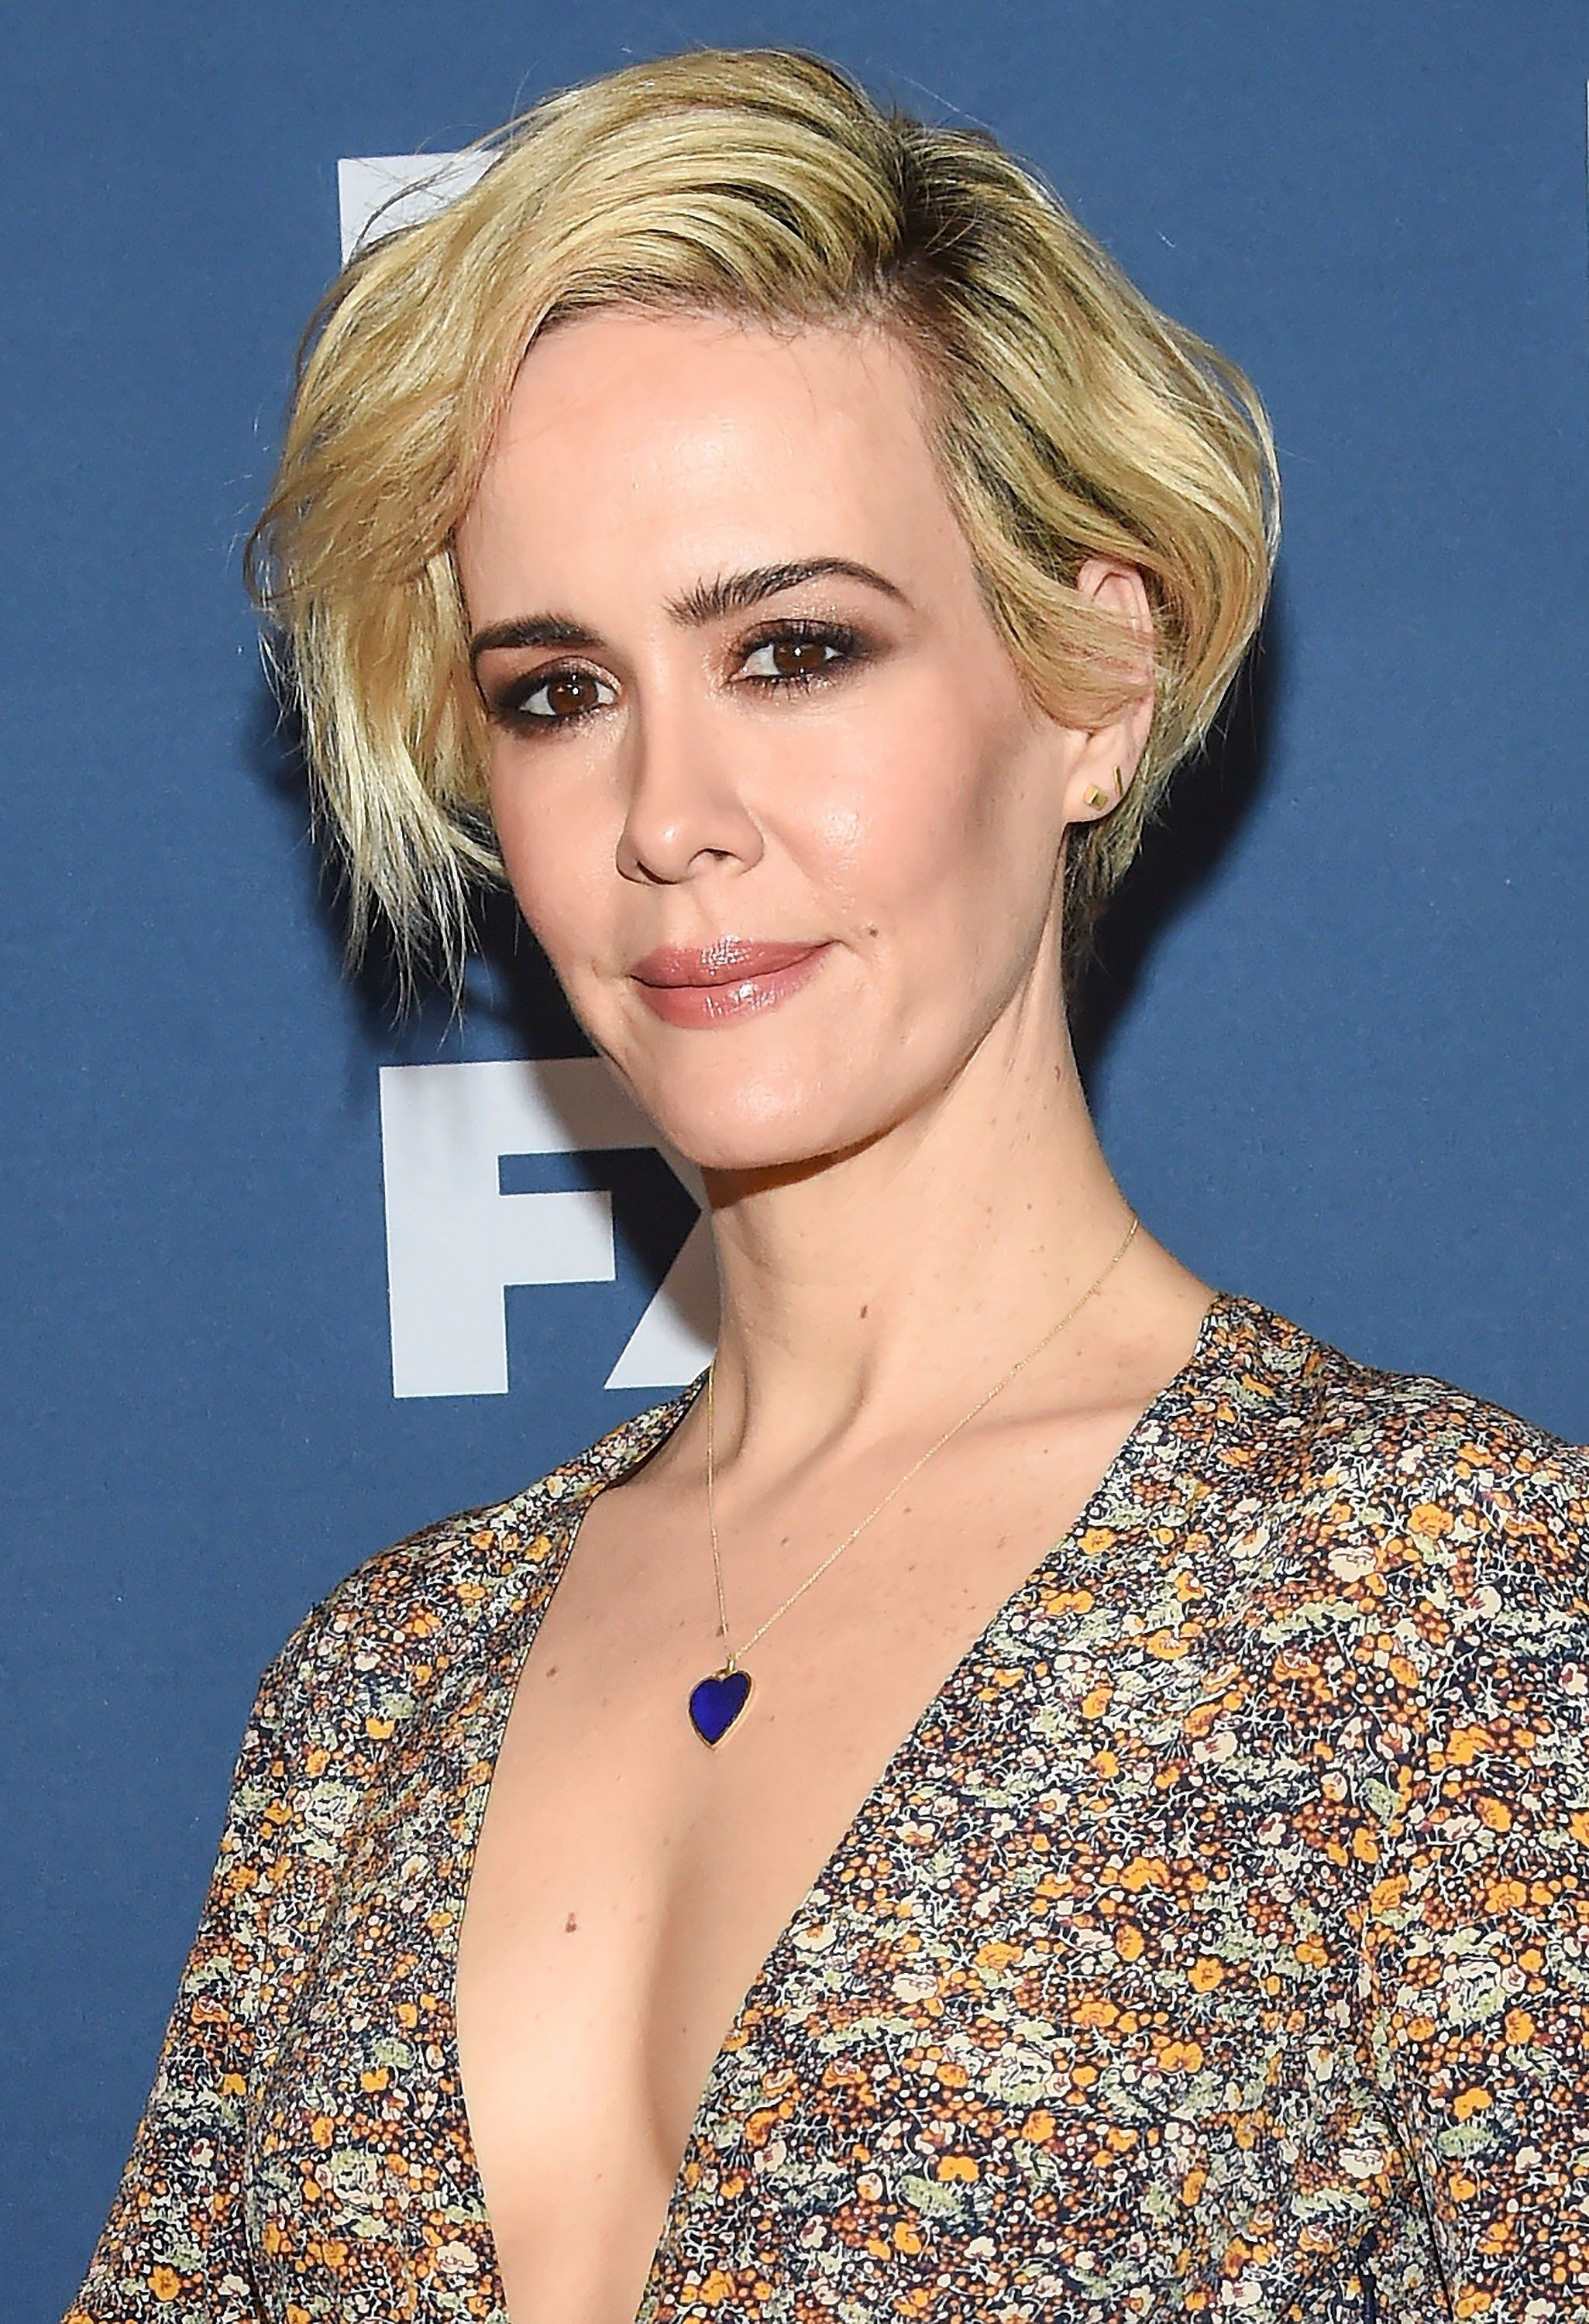 Hot Sarah Paulson nudes (54 photo), Pussy, Fappening, Instagram, butt 2006